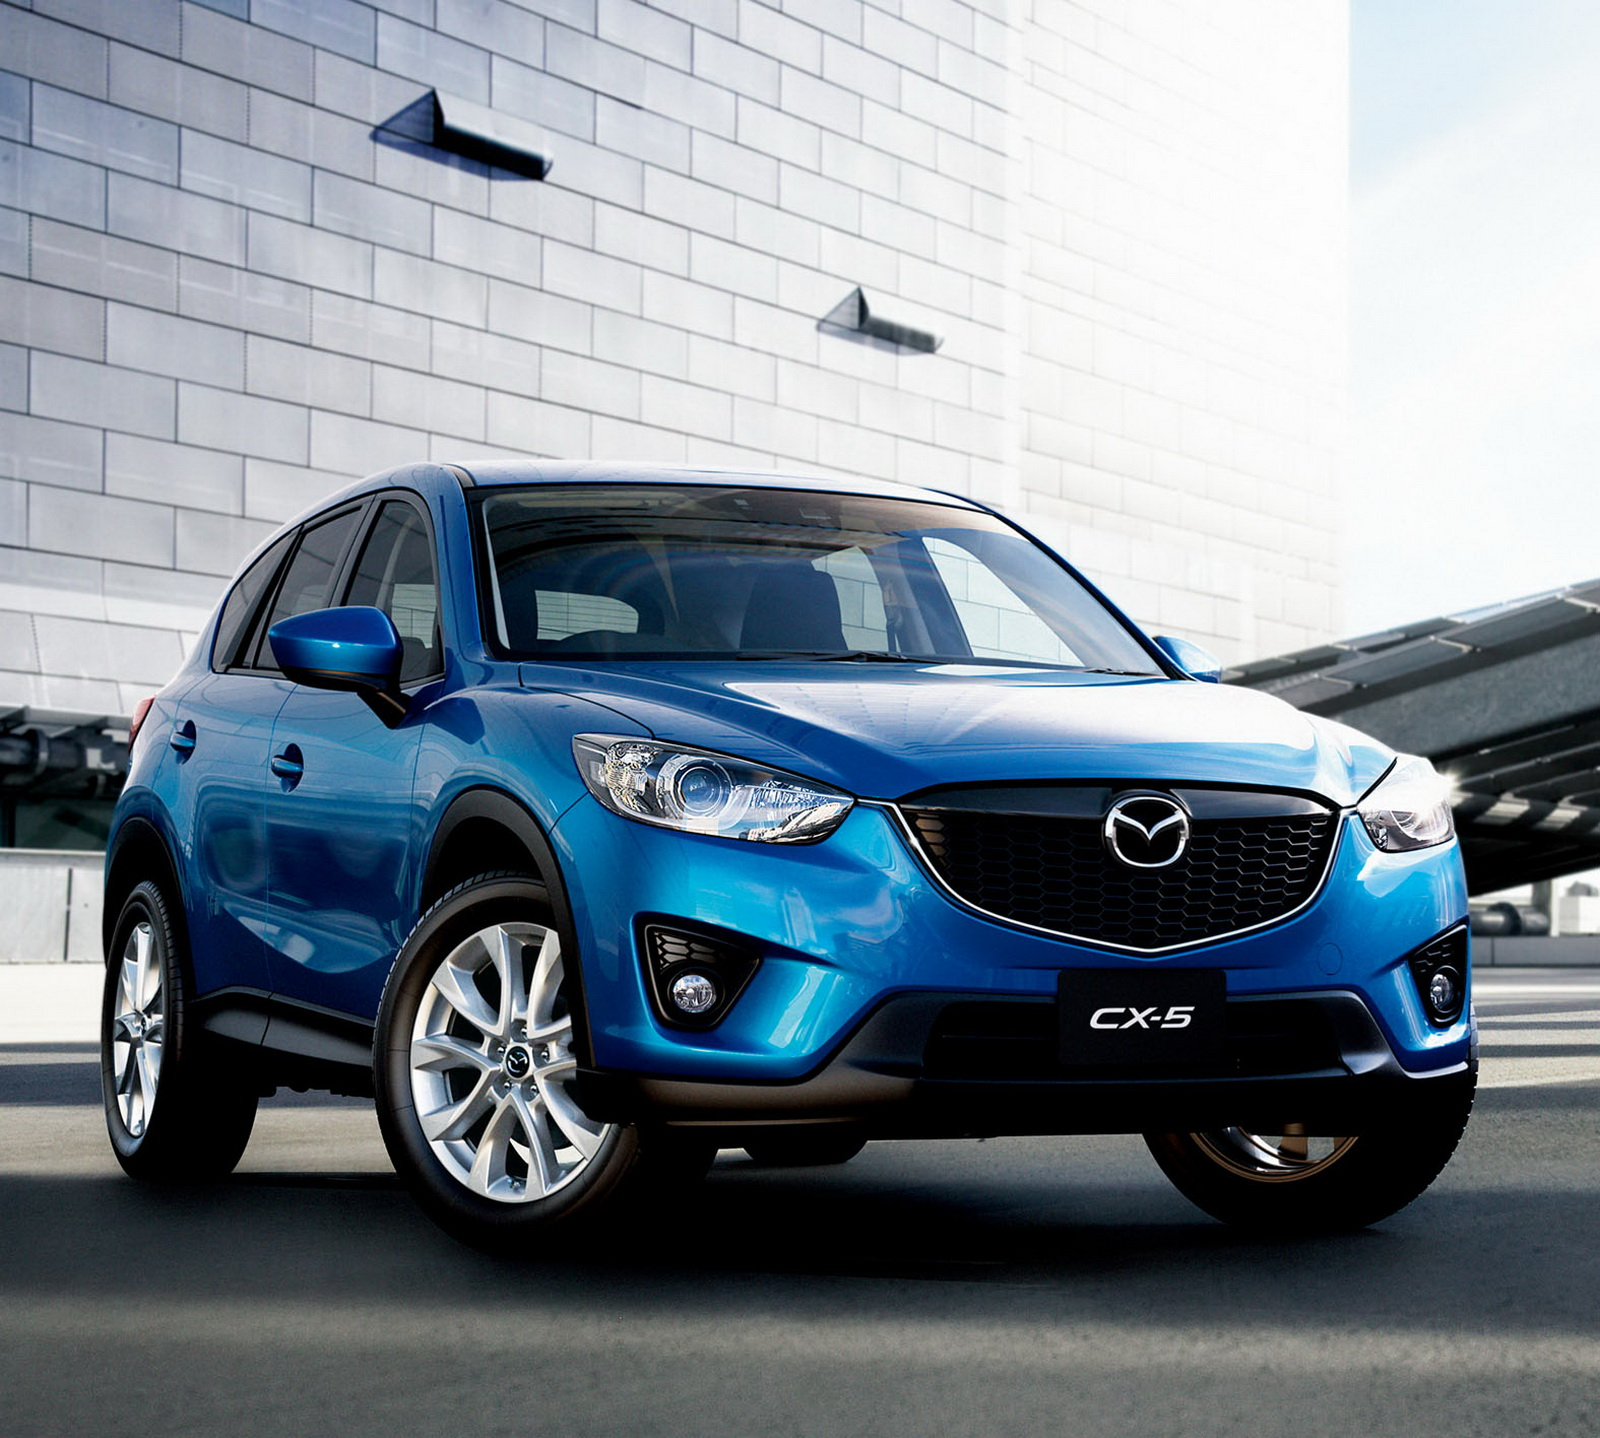 mazda to launch all new mazda cx 5 crossover suv. Black Bedroom Furniture Sets. Home Design Ideas